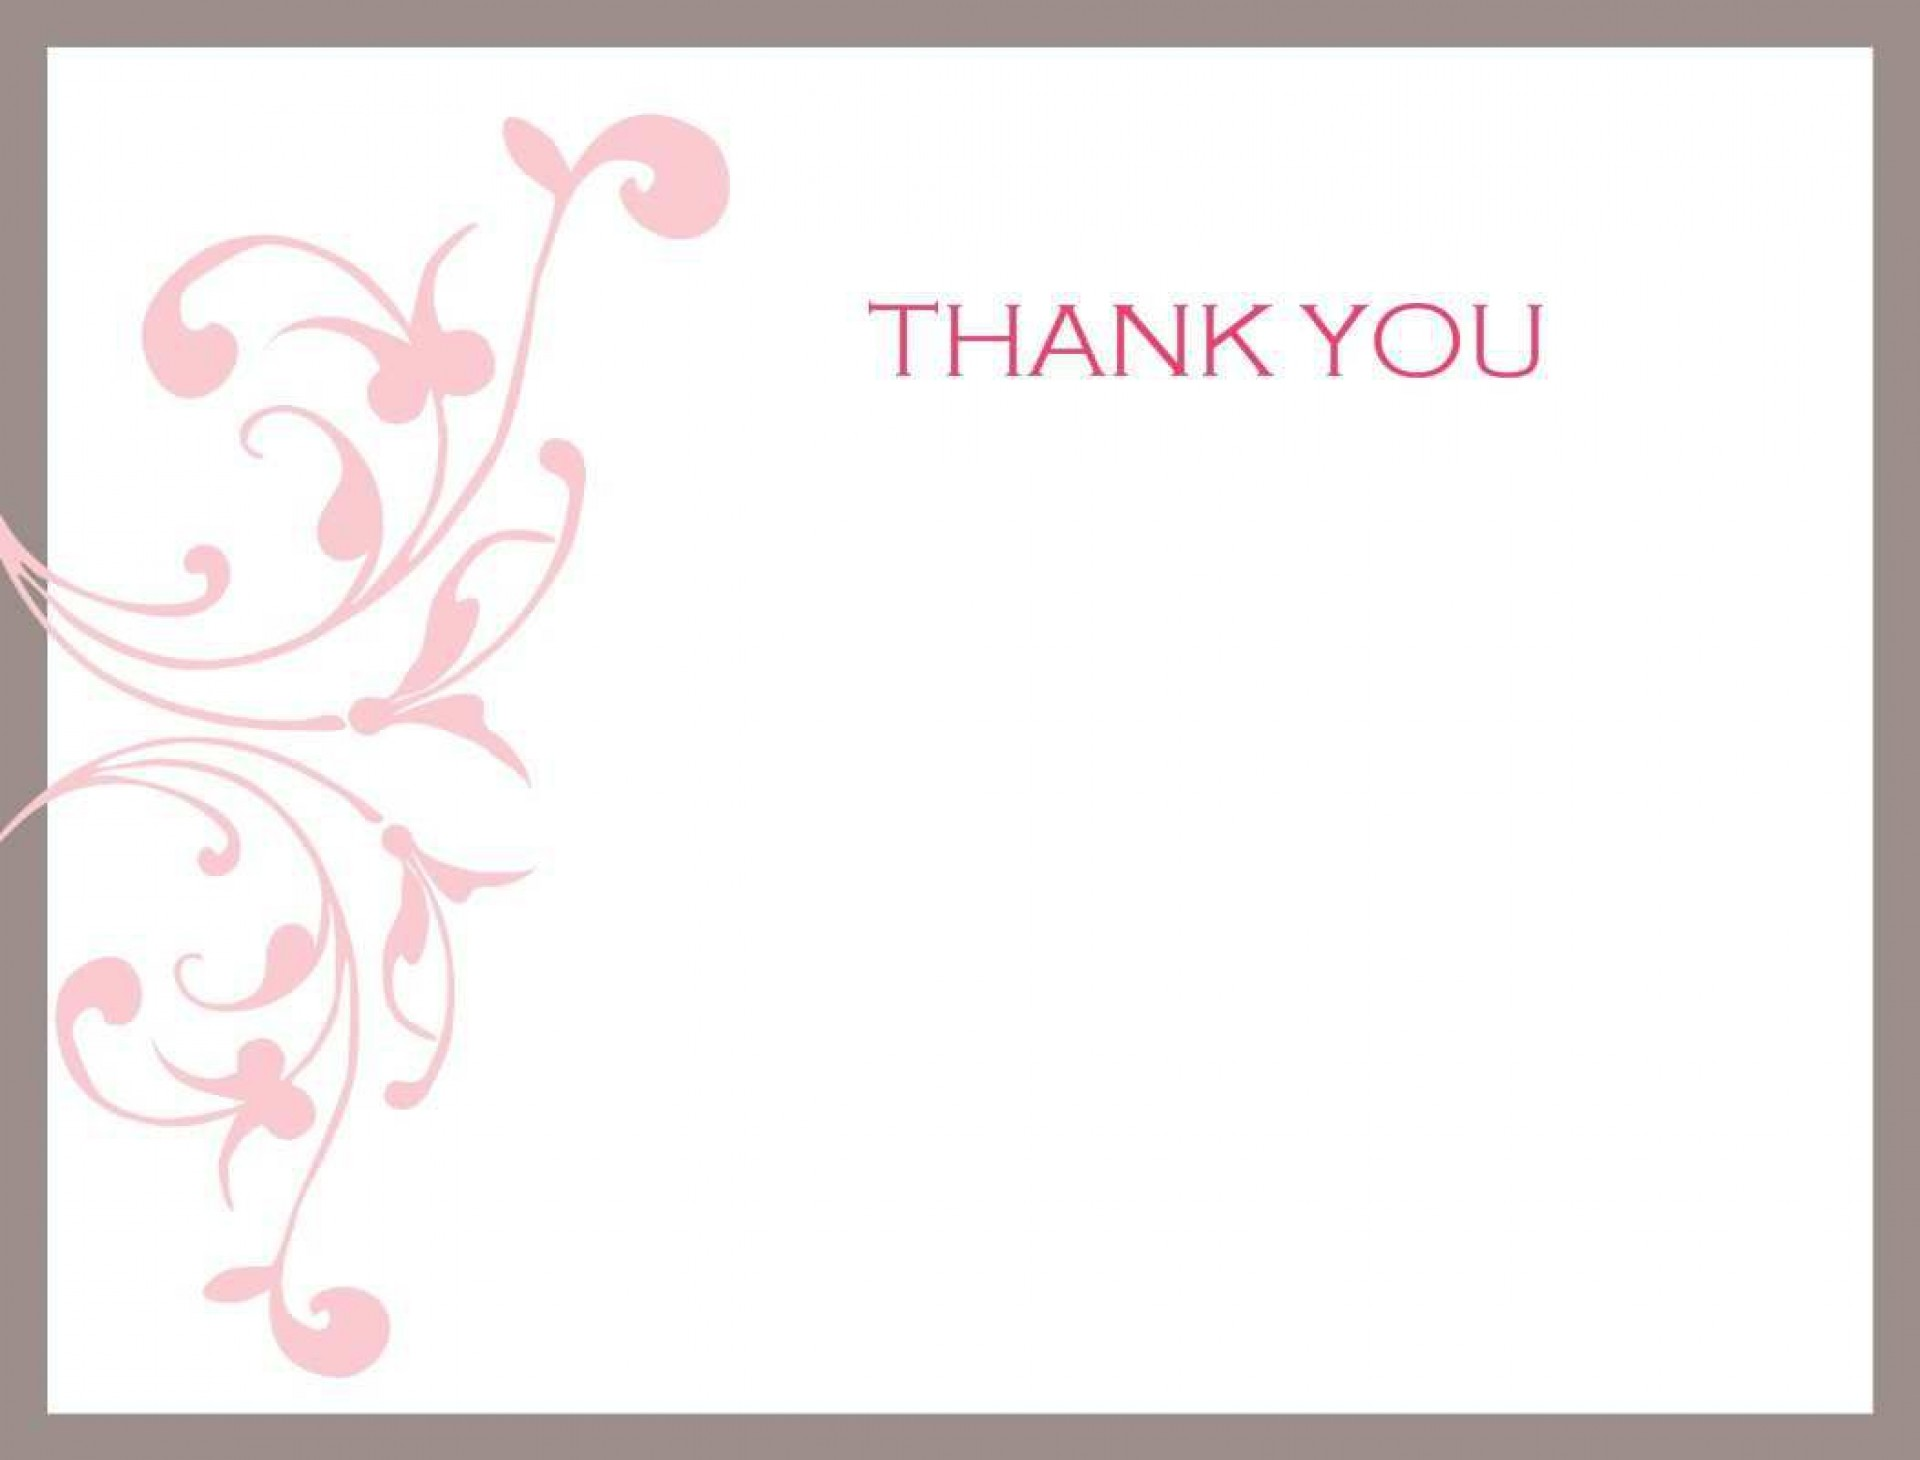 002 Fascinating Free Thank You Card Template Idea  Google Doc For Funeral Microsoft Word1920